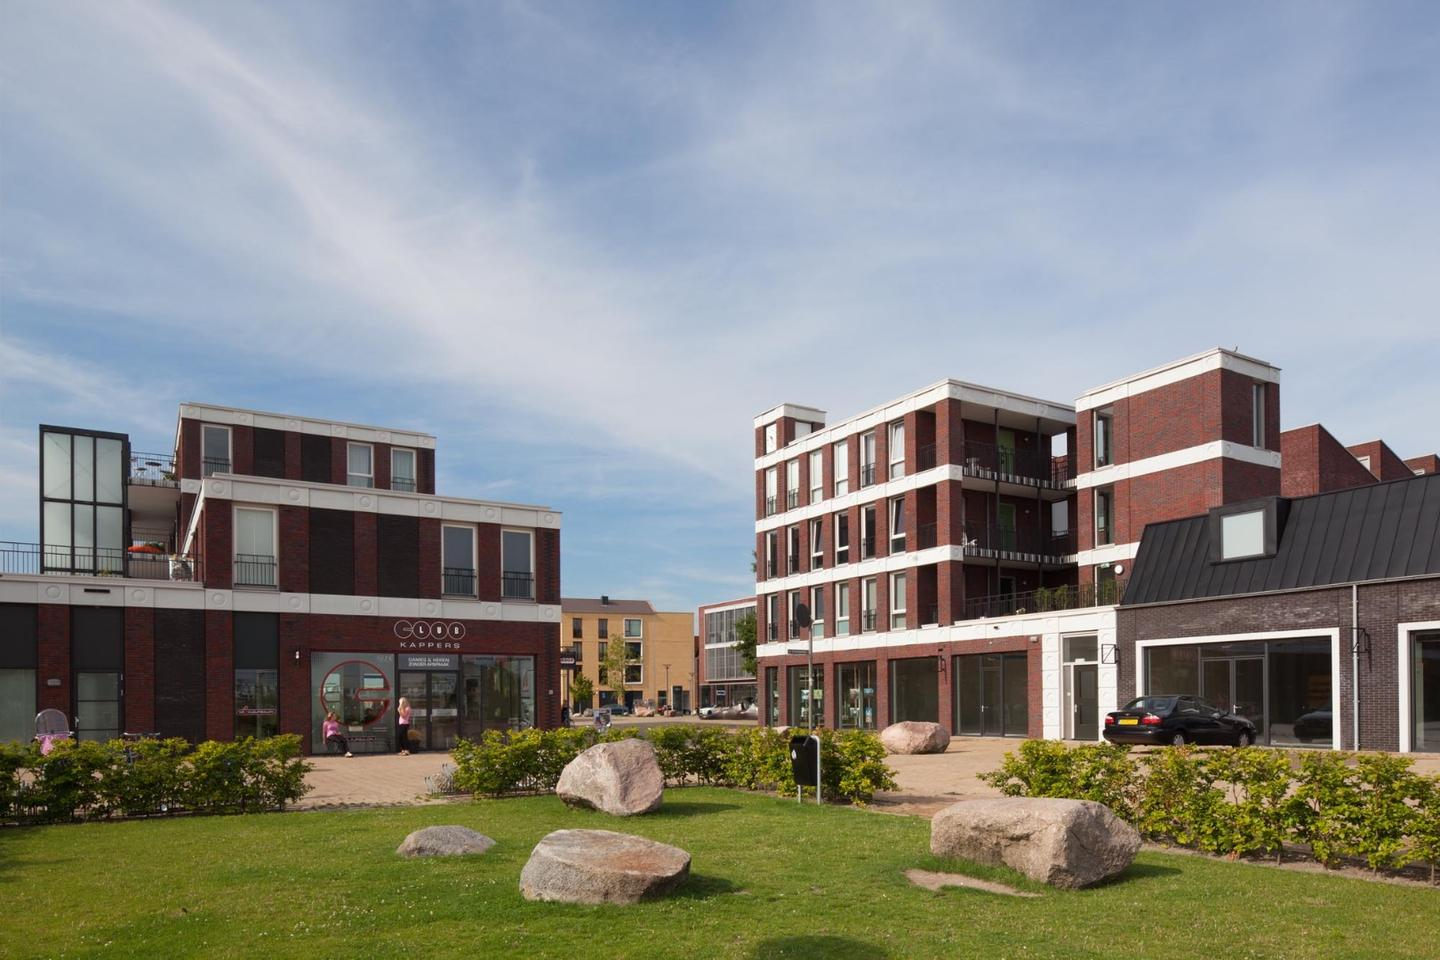 The project came about as Attika Architekten is handling the master plan forVathorst in the Netherlands